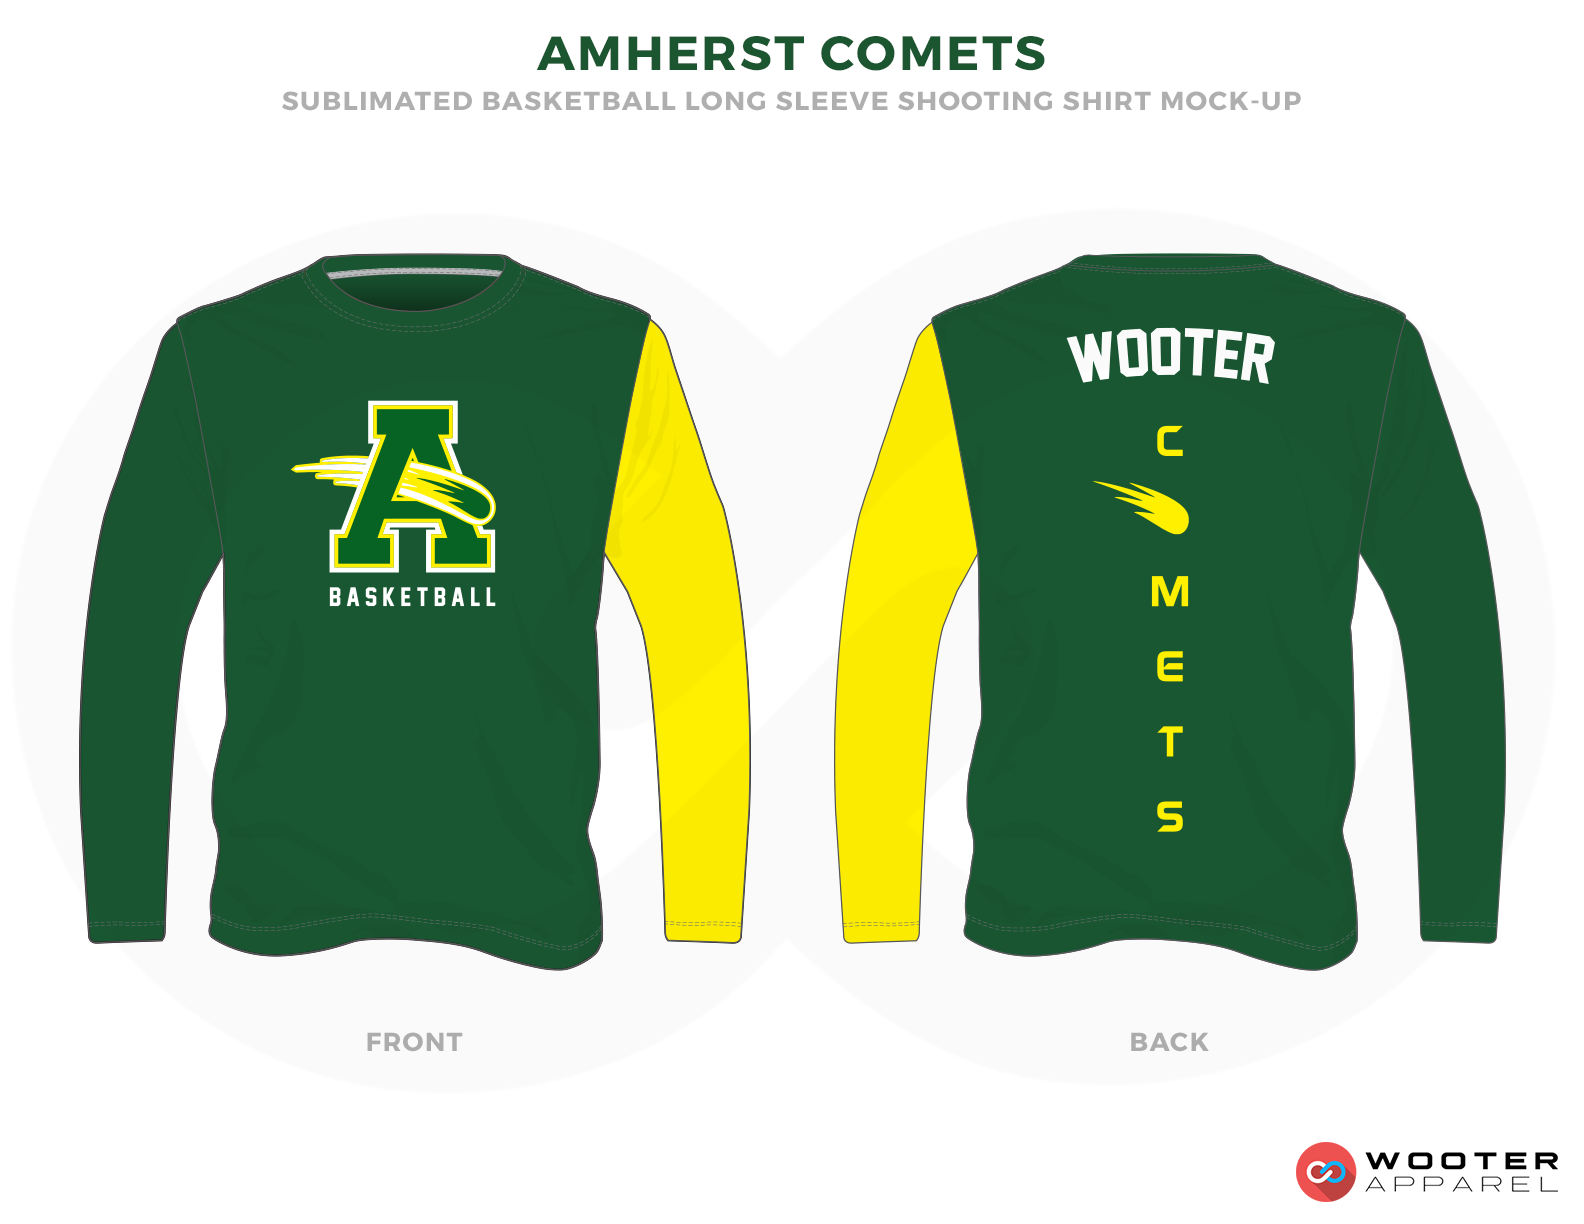 AMHERST COMETS Green Yellow and White Premium Shooting Shirt